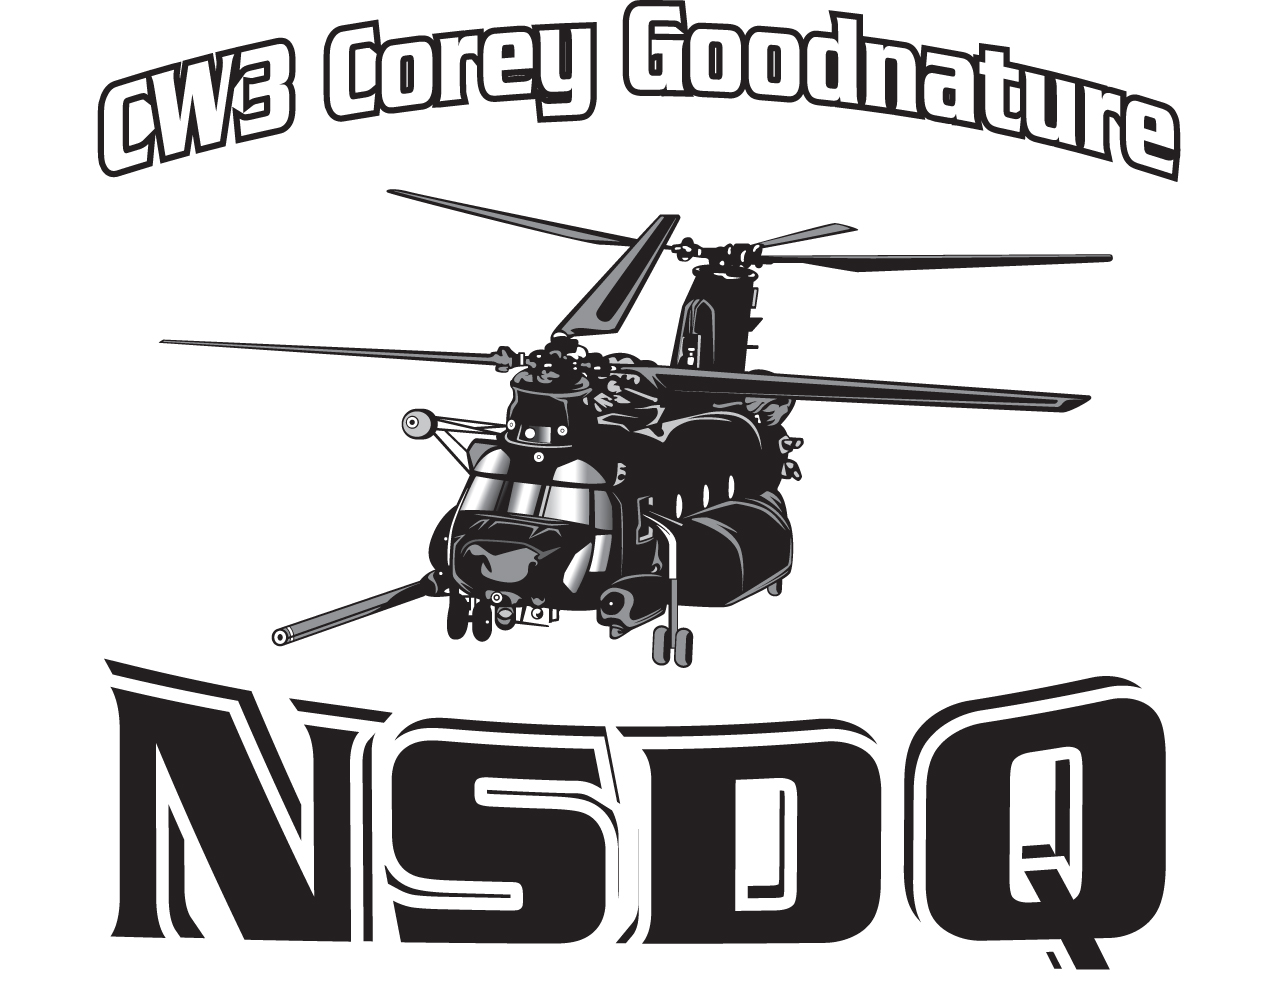 CW3 Corey Goodnature NSDQ